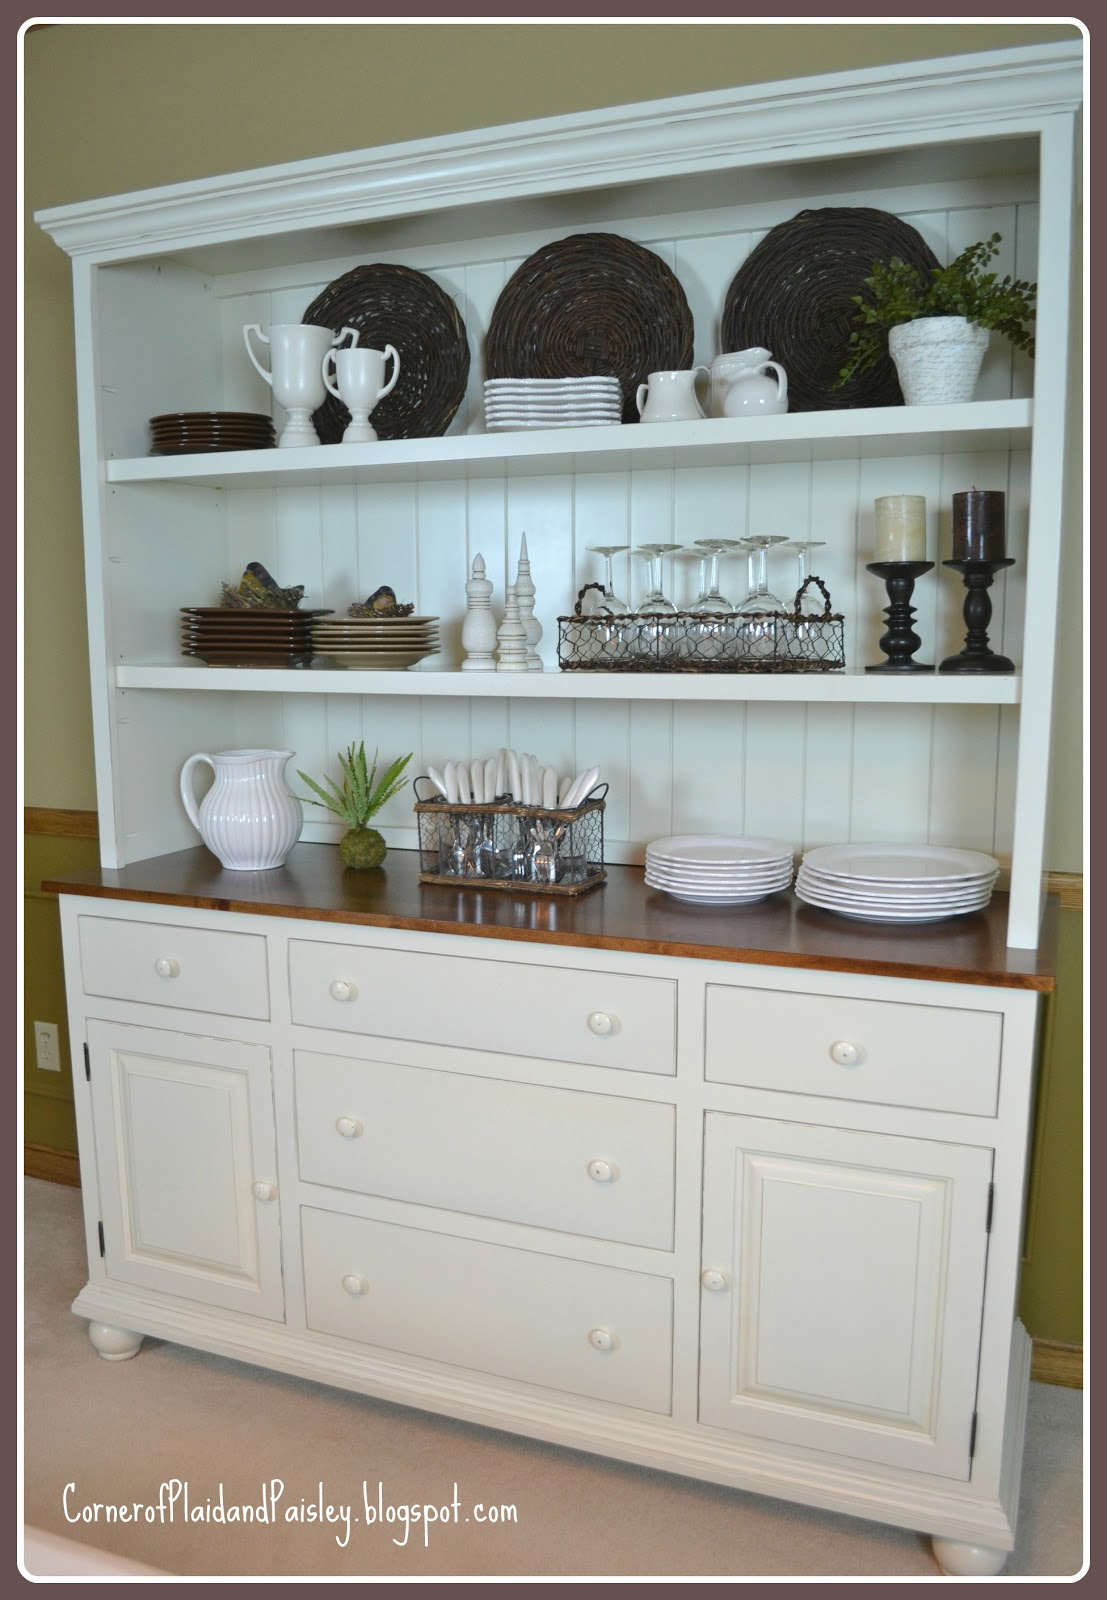 hutch dining room | Corner of Plaid and Paisley: Better Than a New Car - New ...